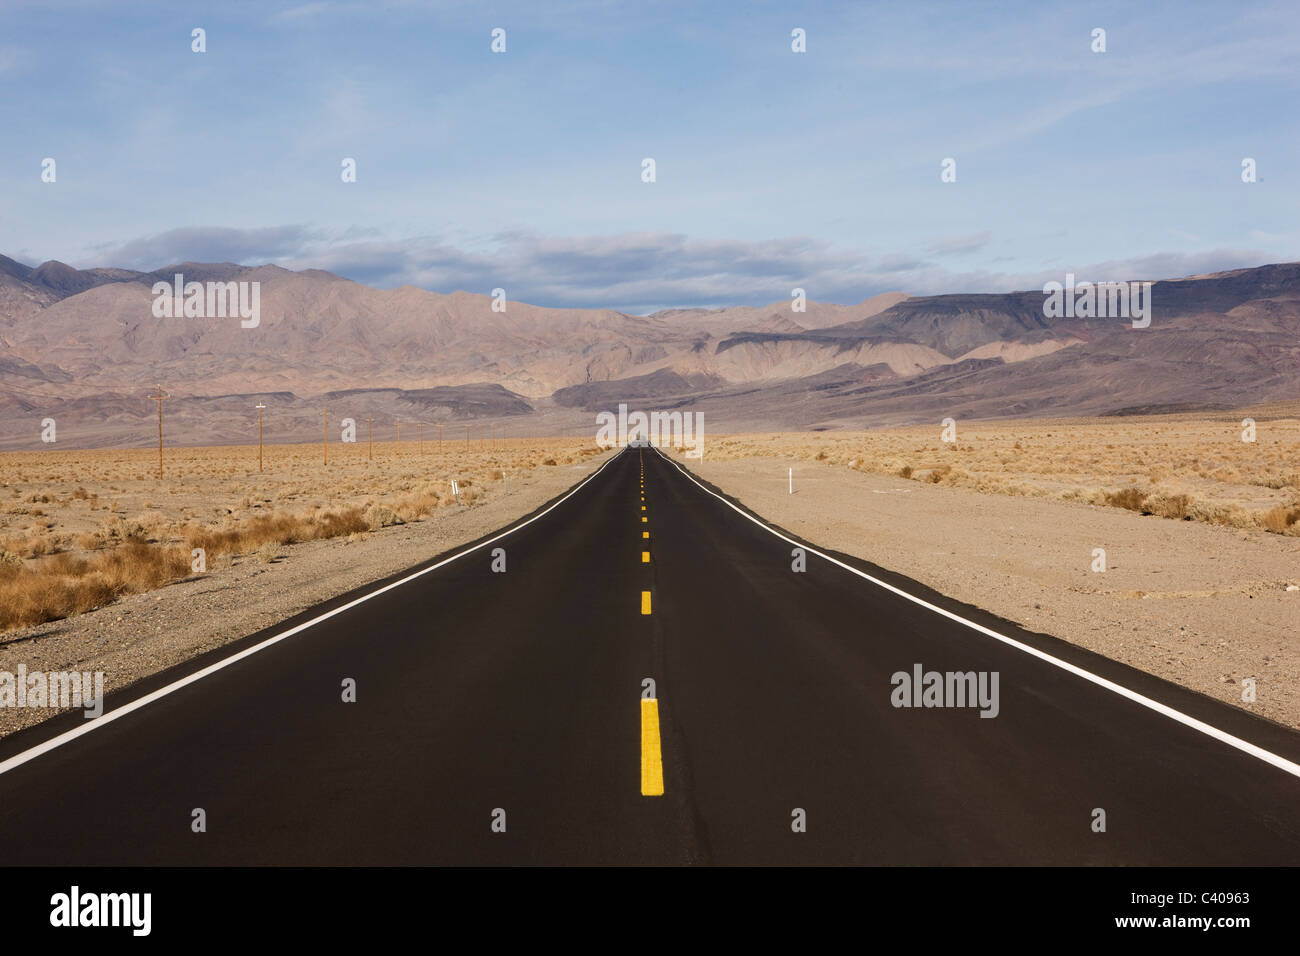 Dessert road with yellow stripes - Stock Image